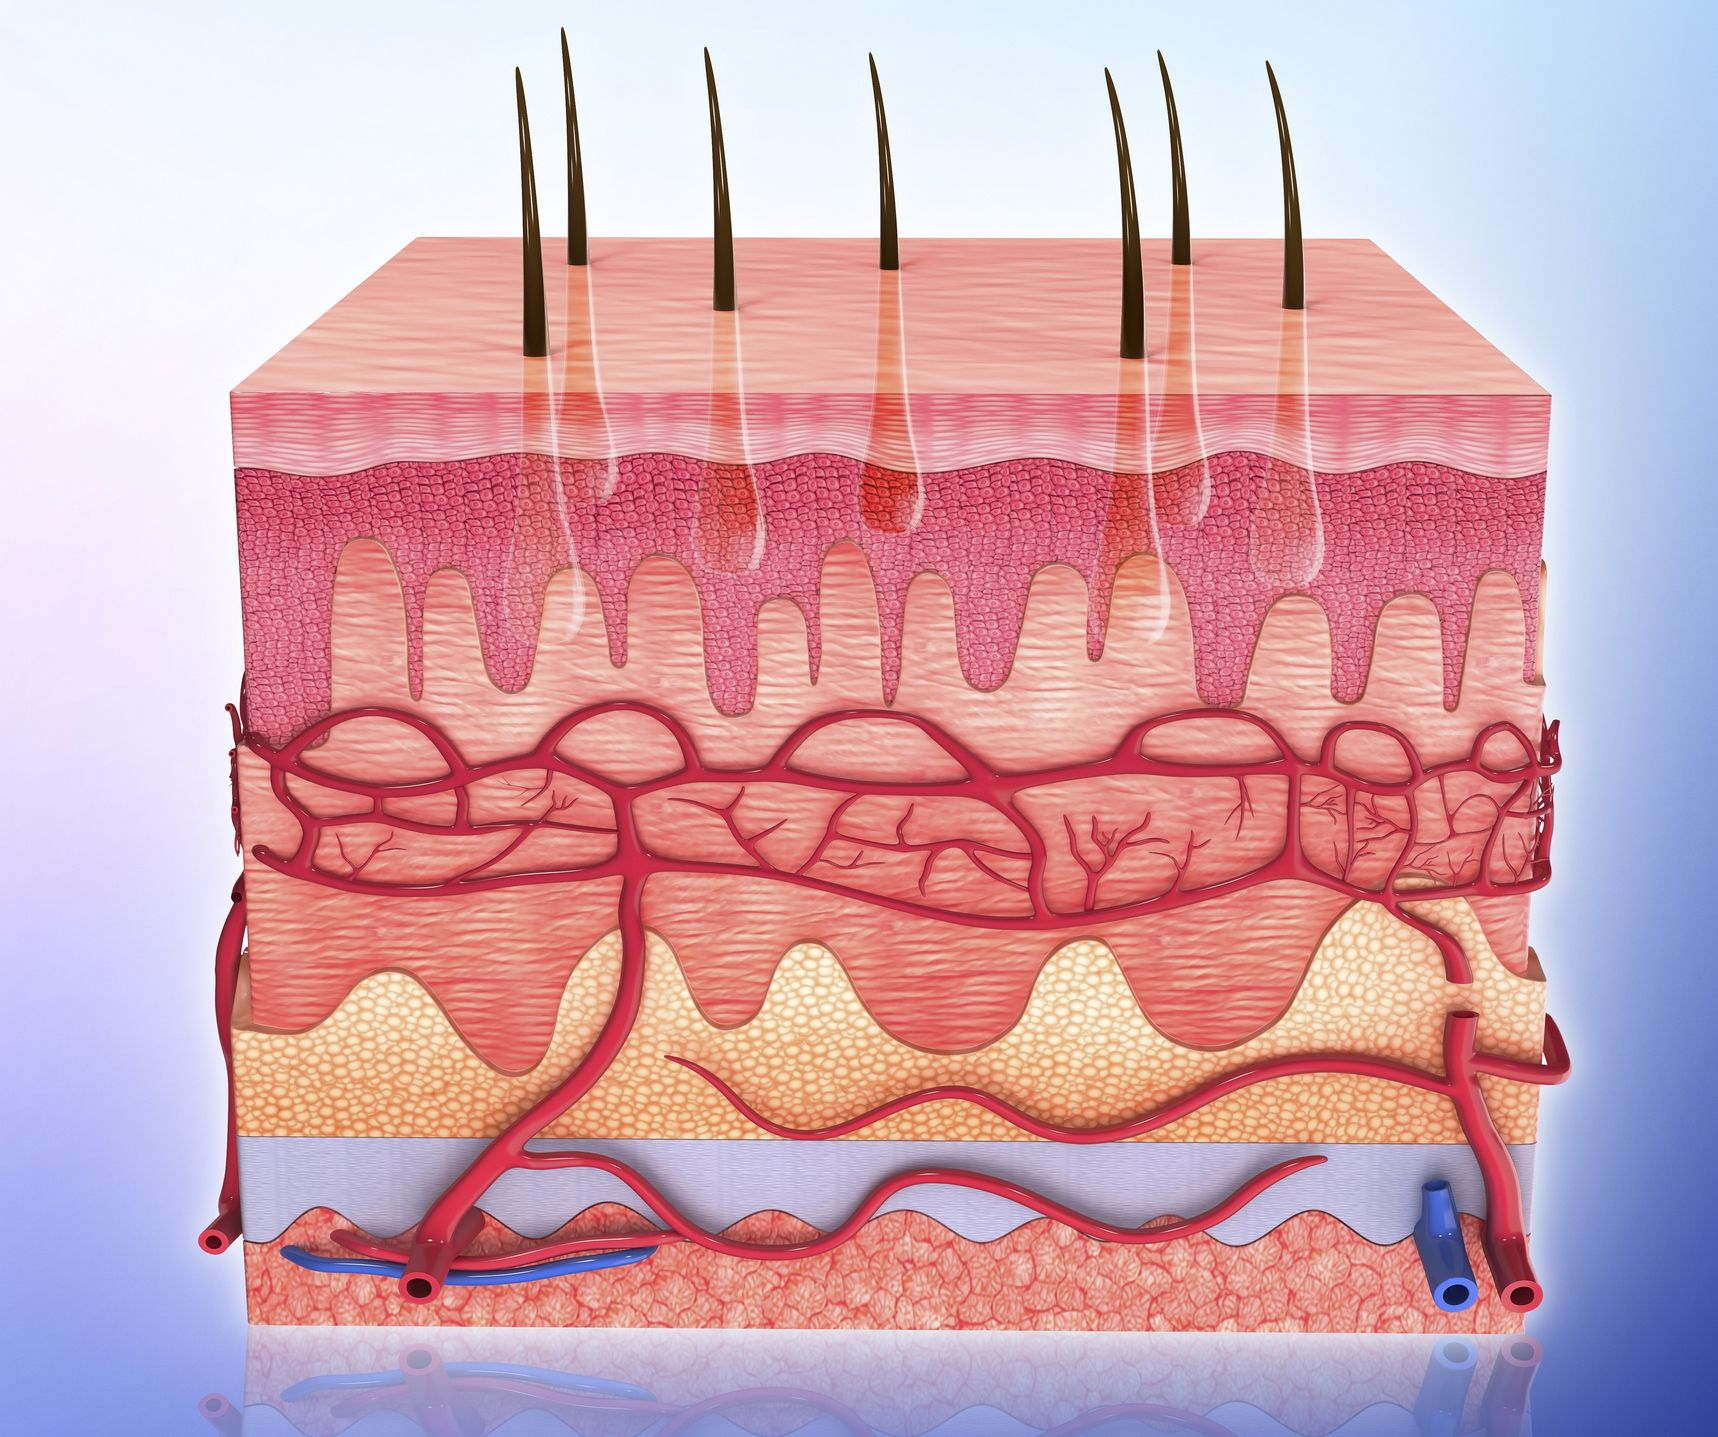 Subcutaneous Tissue Is The Innermost Layer Of Skin